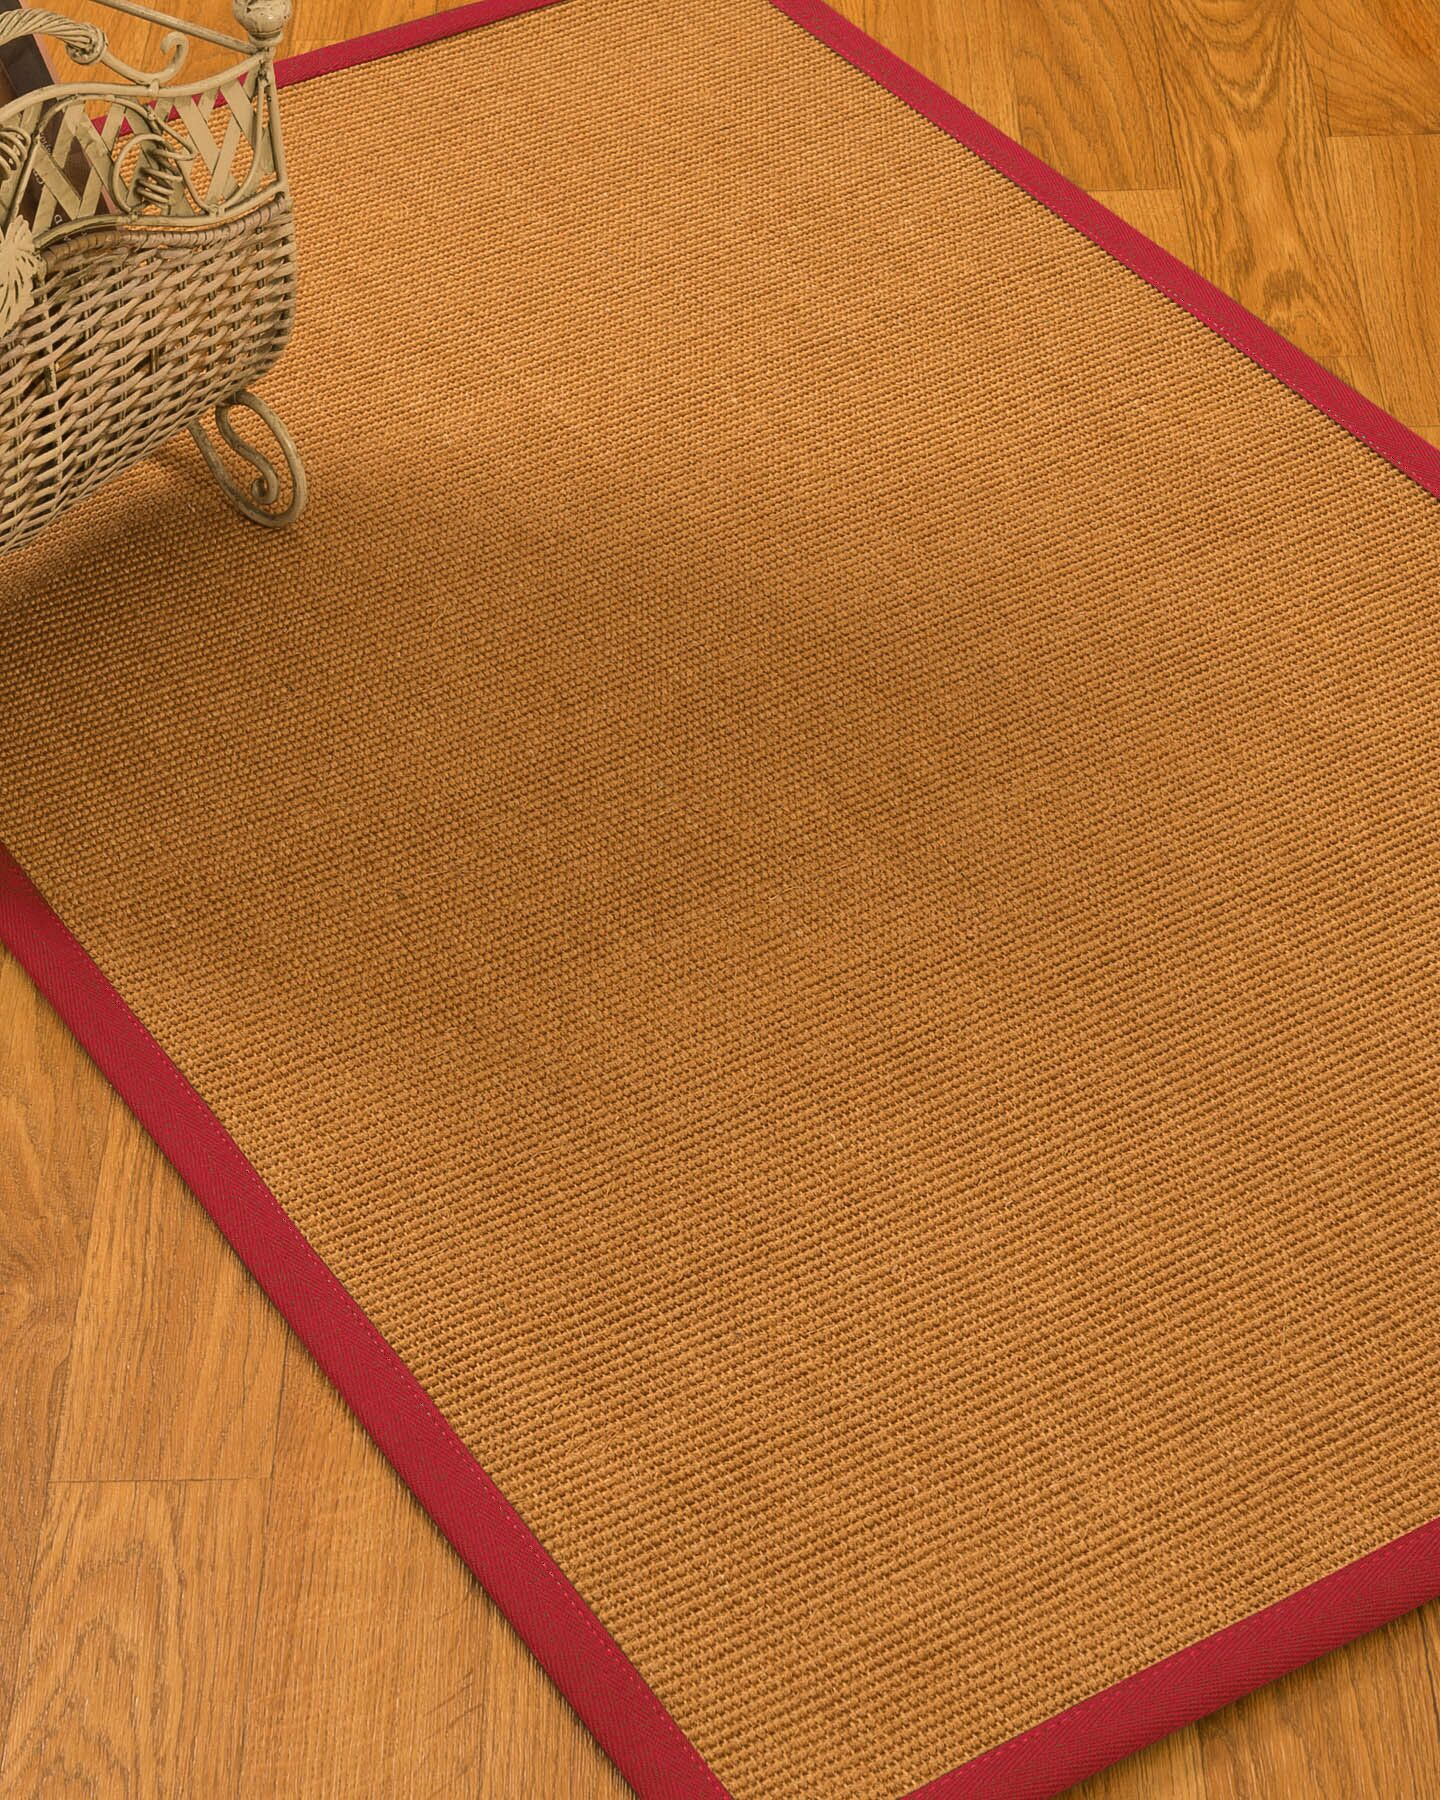 Kemmer Border Hand-Woven Brown/Red Area Rug Rug Size: Rectangle 5' x 8'